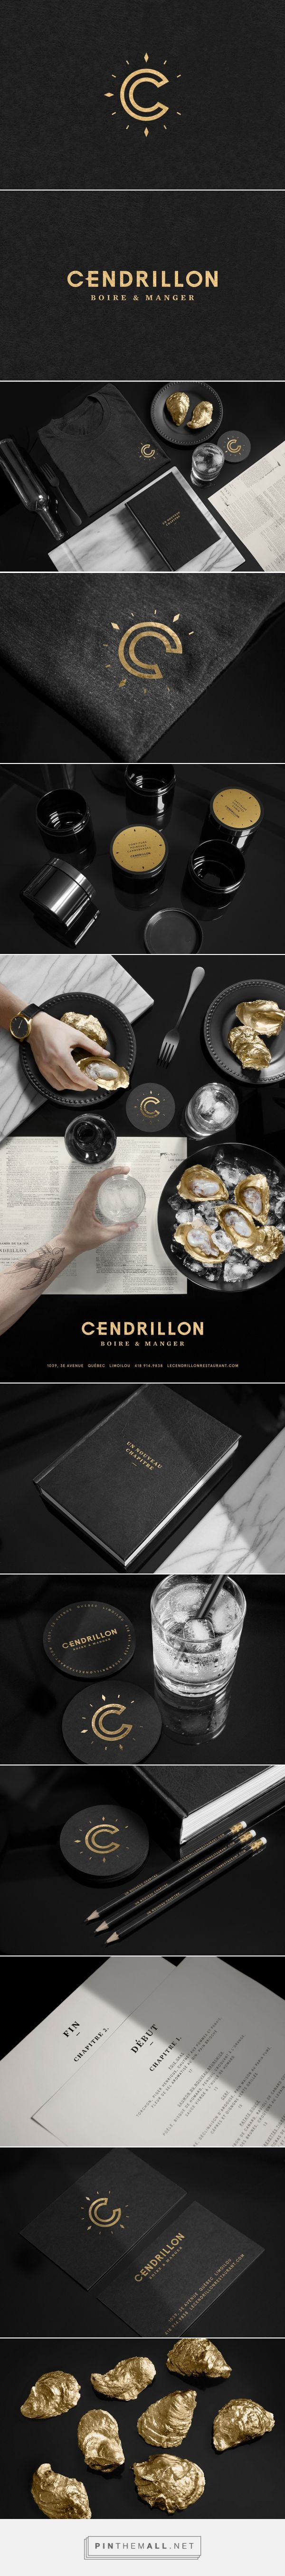 Cendrillon Restaurant and Bar Branding by Jeremy Hall | Fivestar Branding Agency – Design and Branding Agency & Curated Inspiration Gallery